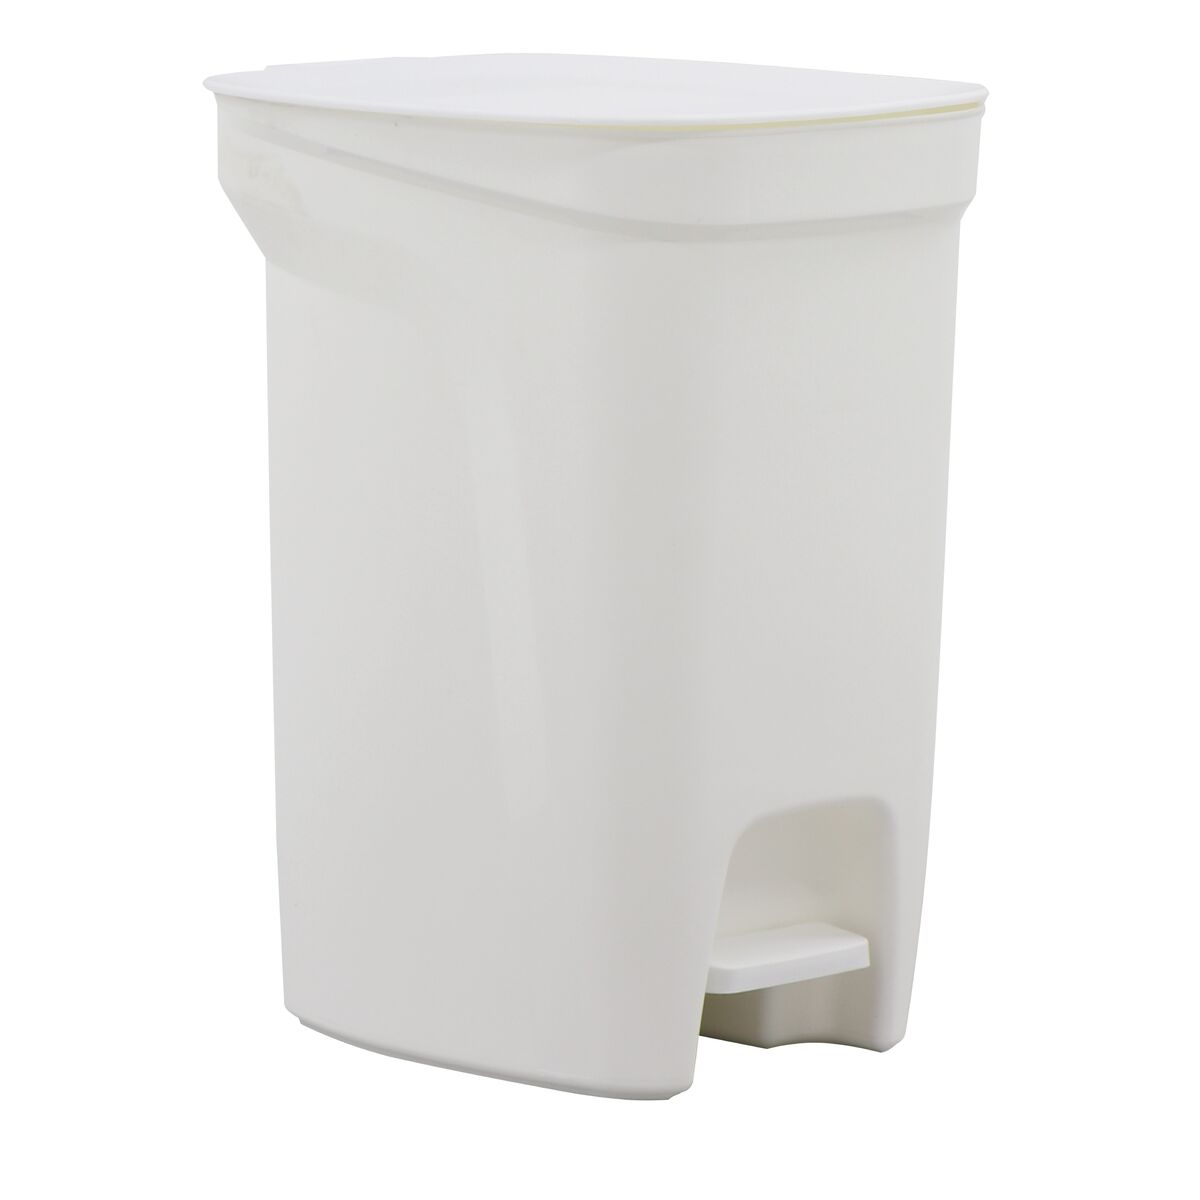 Tramontina Compact White Polypropylene Compact Trash Can with a Galvanized Steel Rod 10L